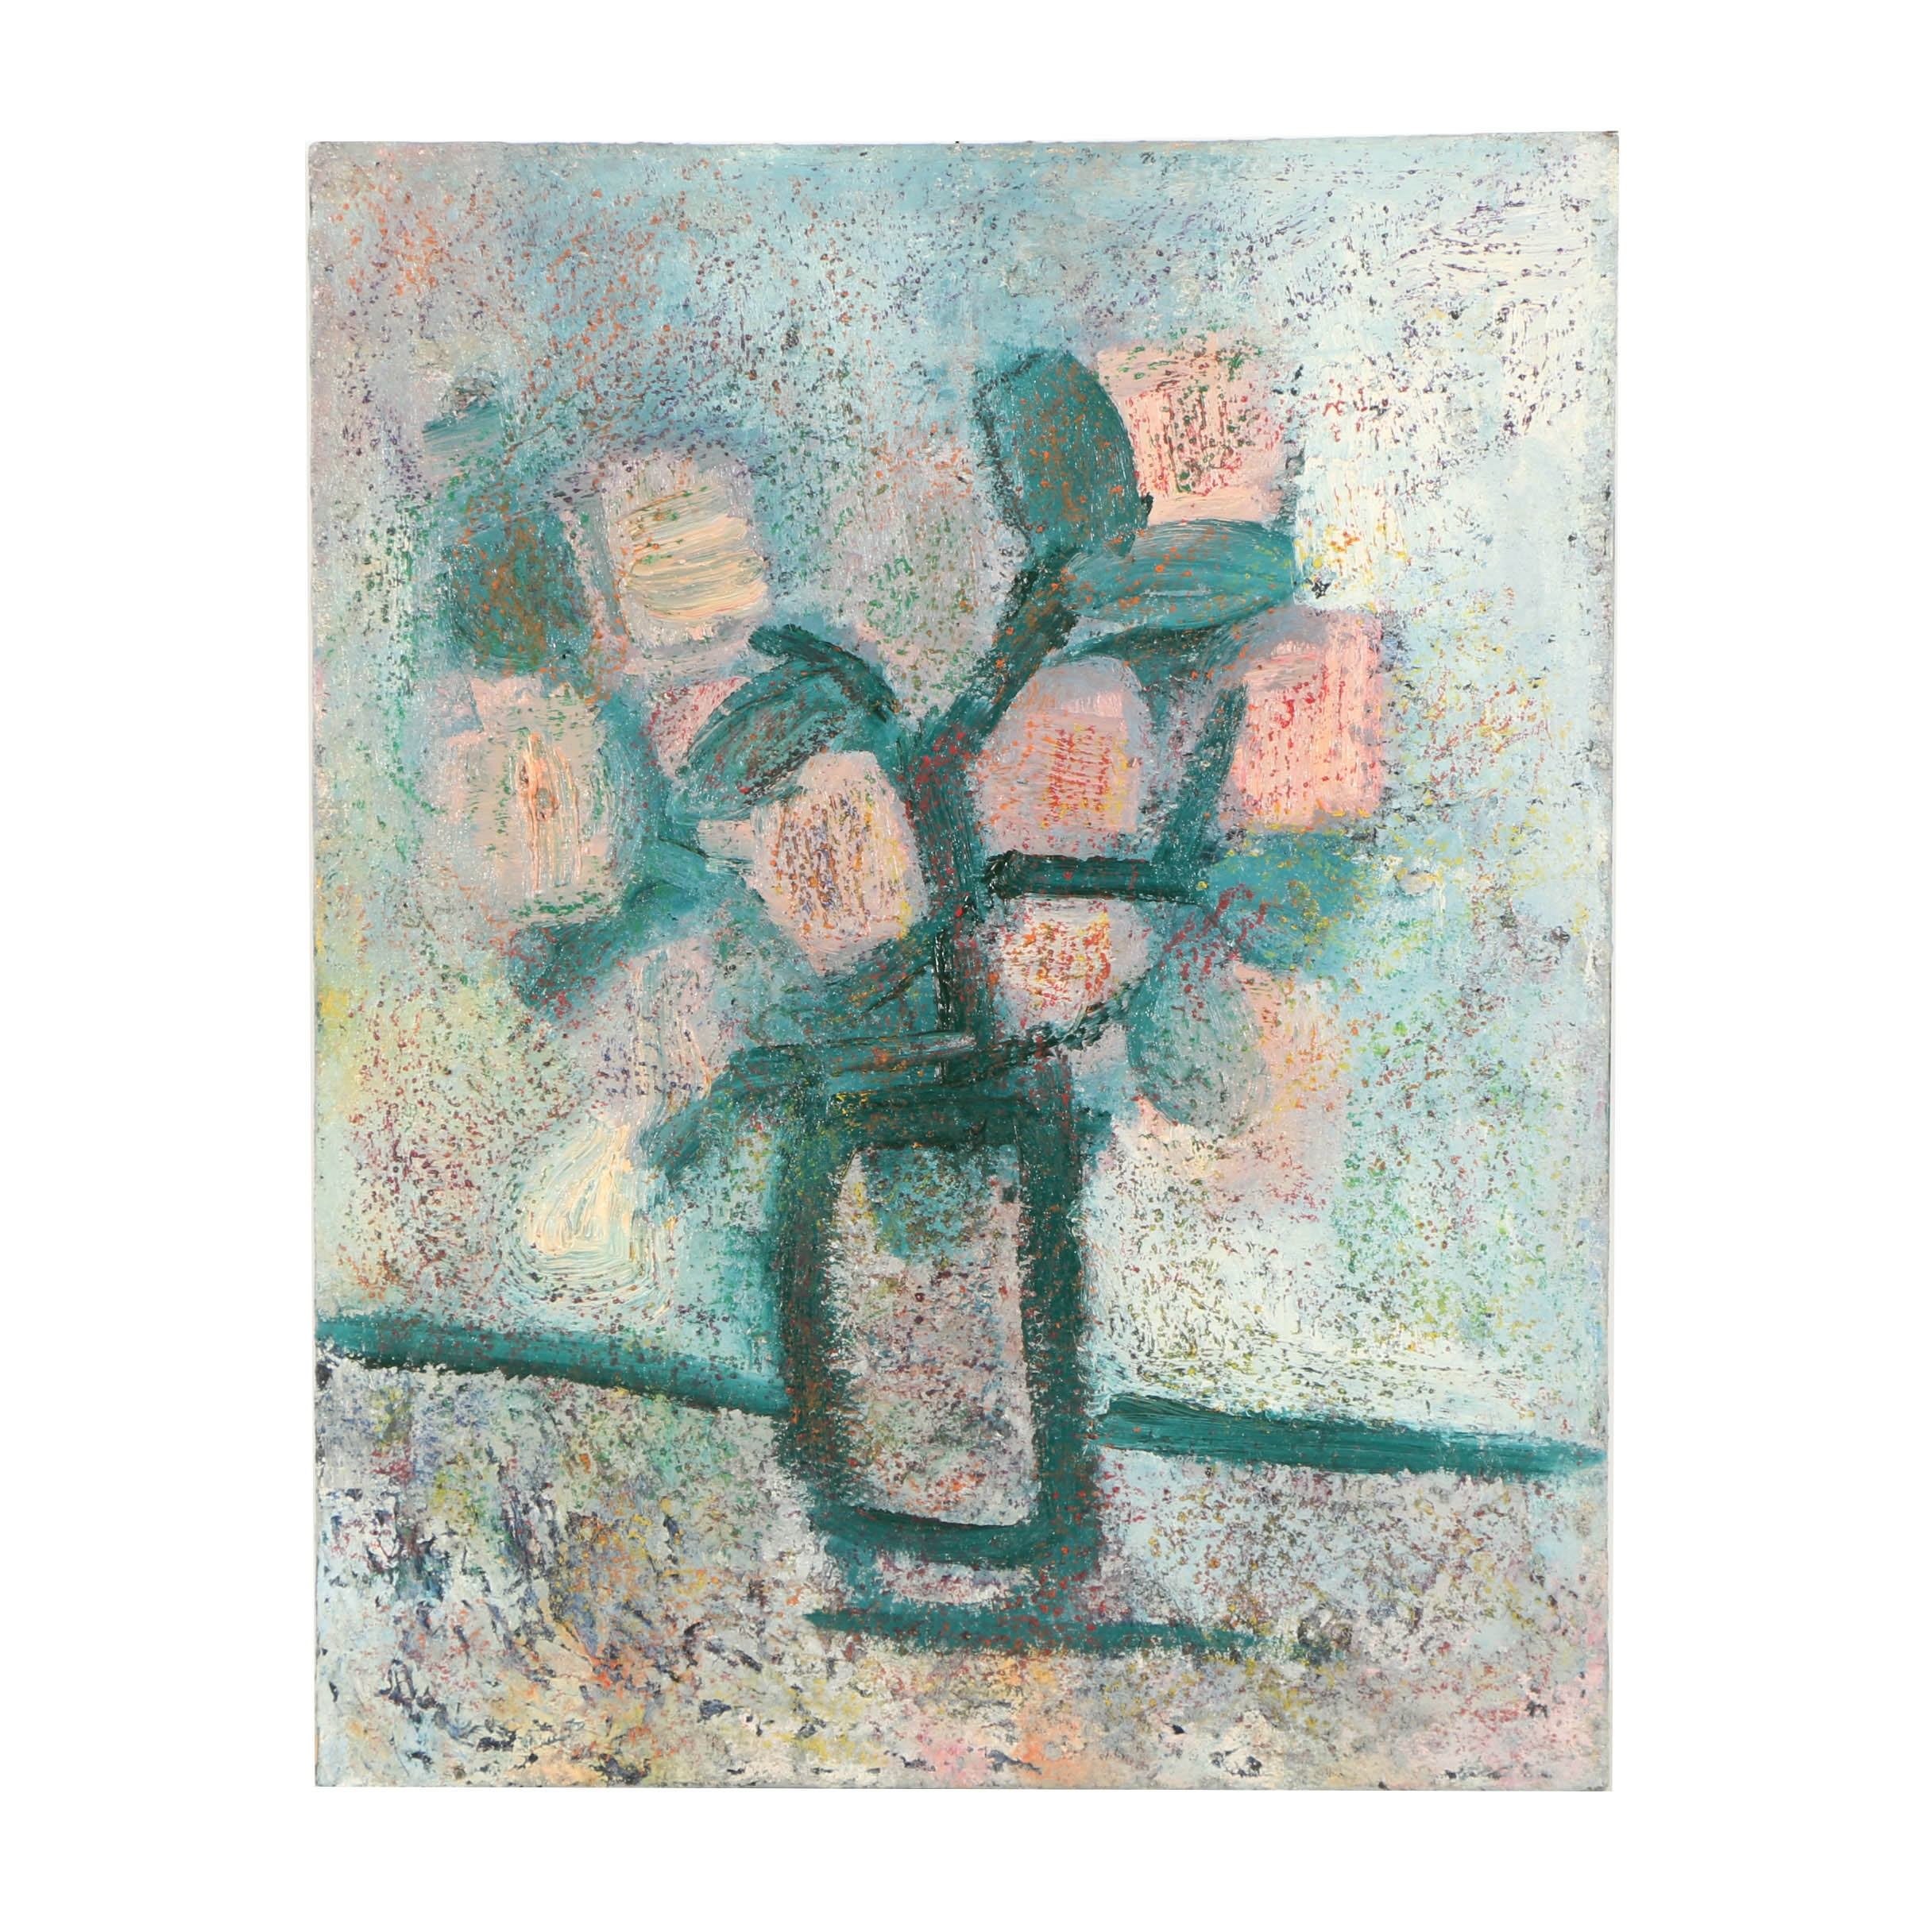 Louis Papp Mixed Media Painting on Canvas of Still Life